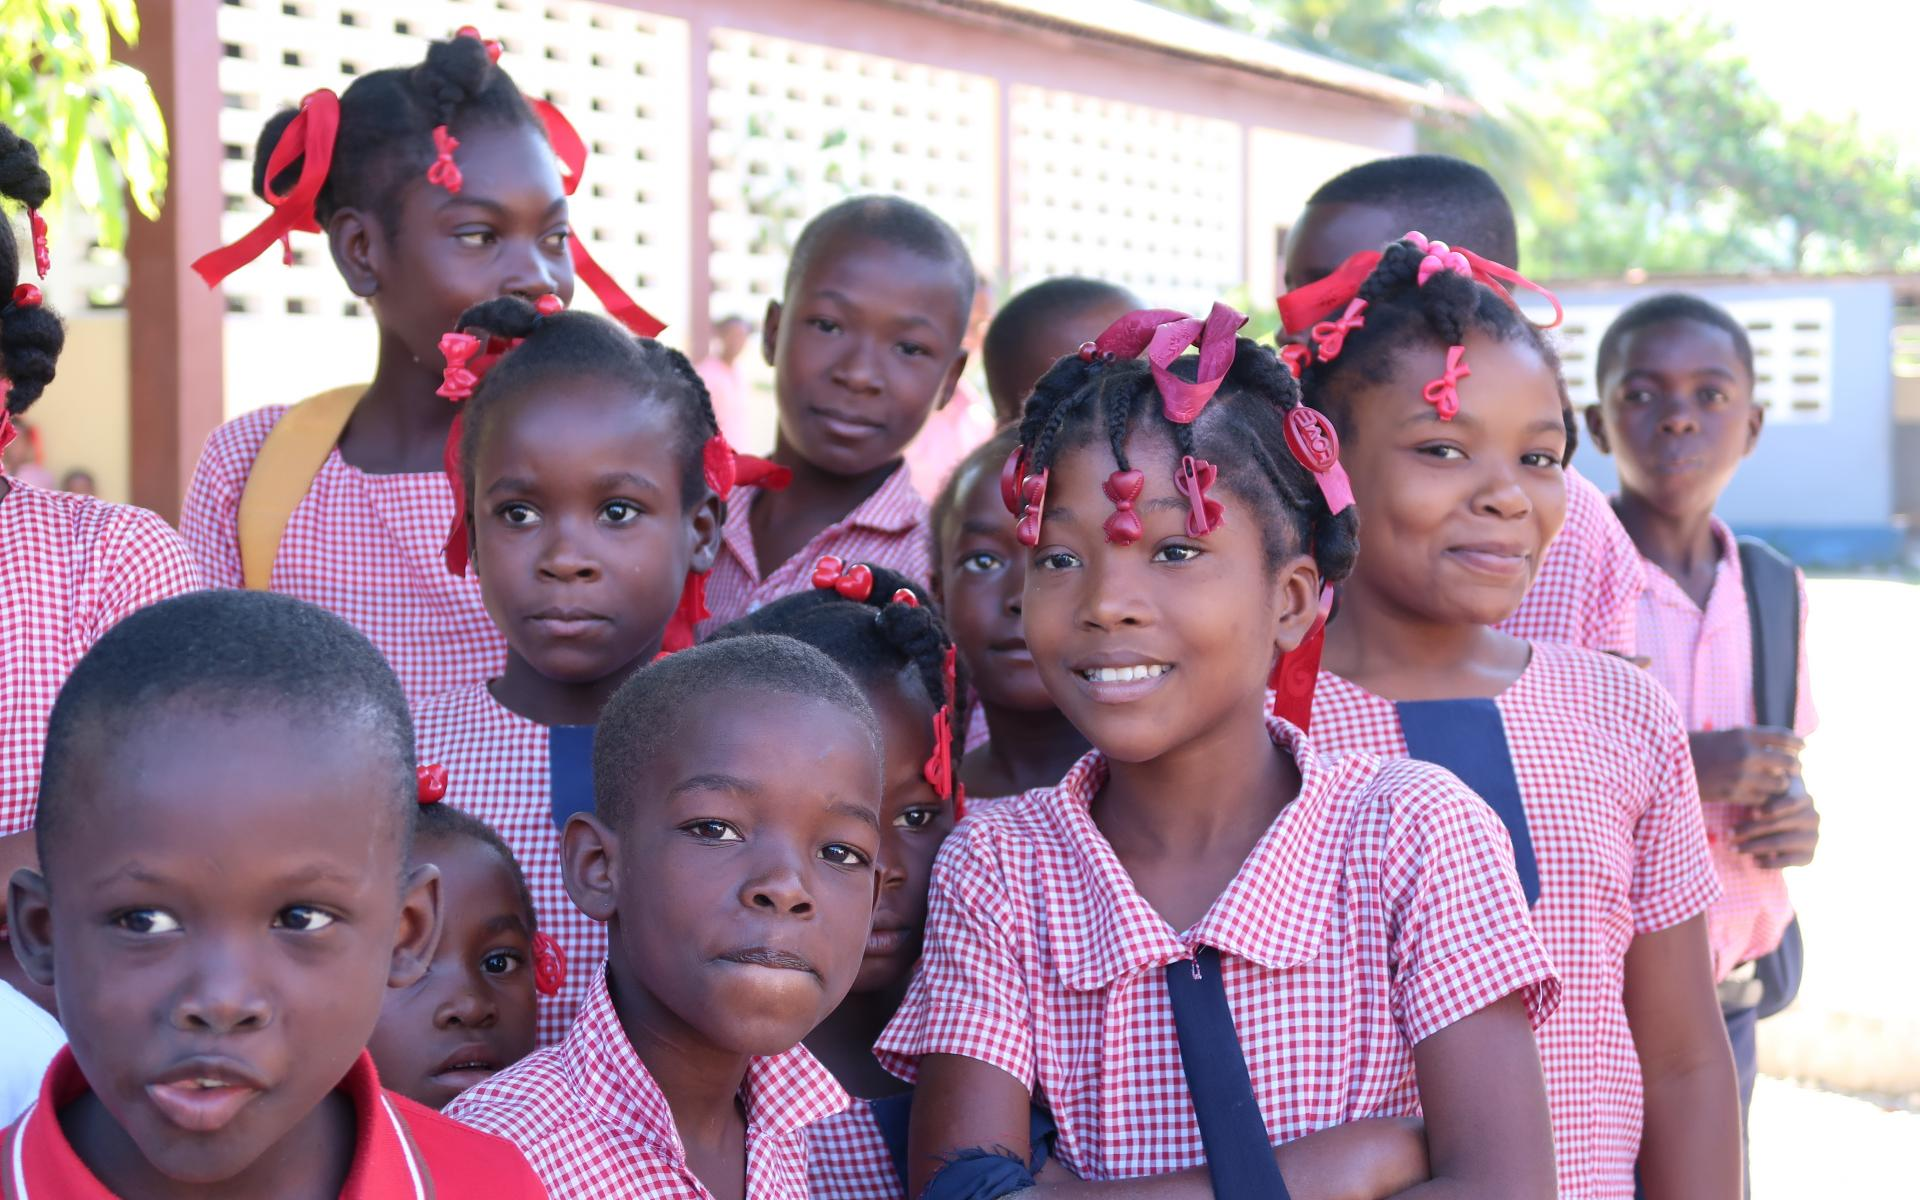 Schulkinder in Haiti